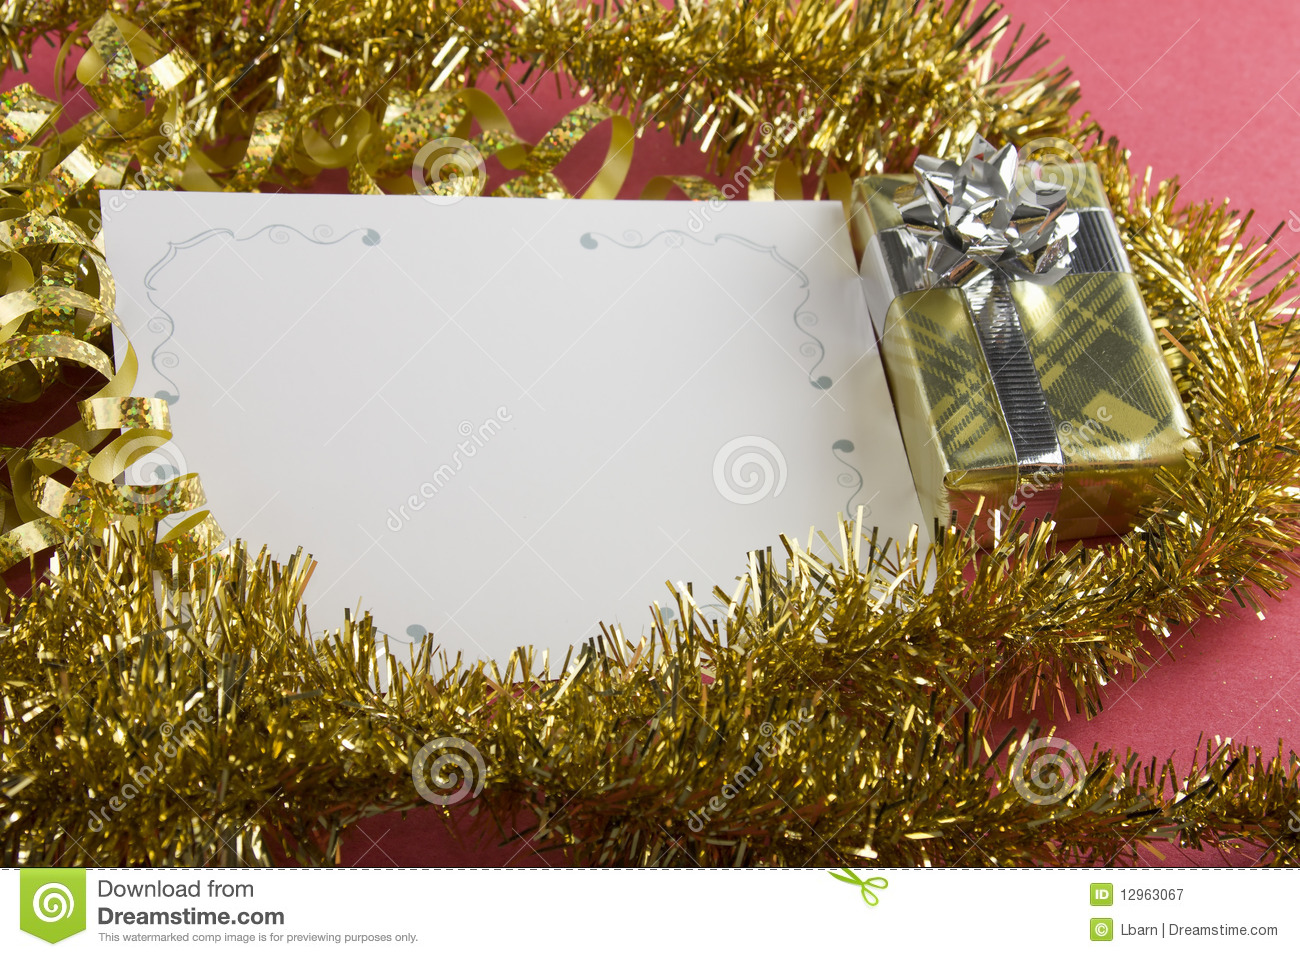 Awesome Gold Present And Blank Christmas Card Regarding Blank Xmas Cards